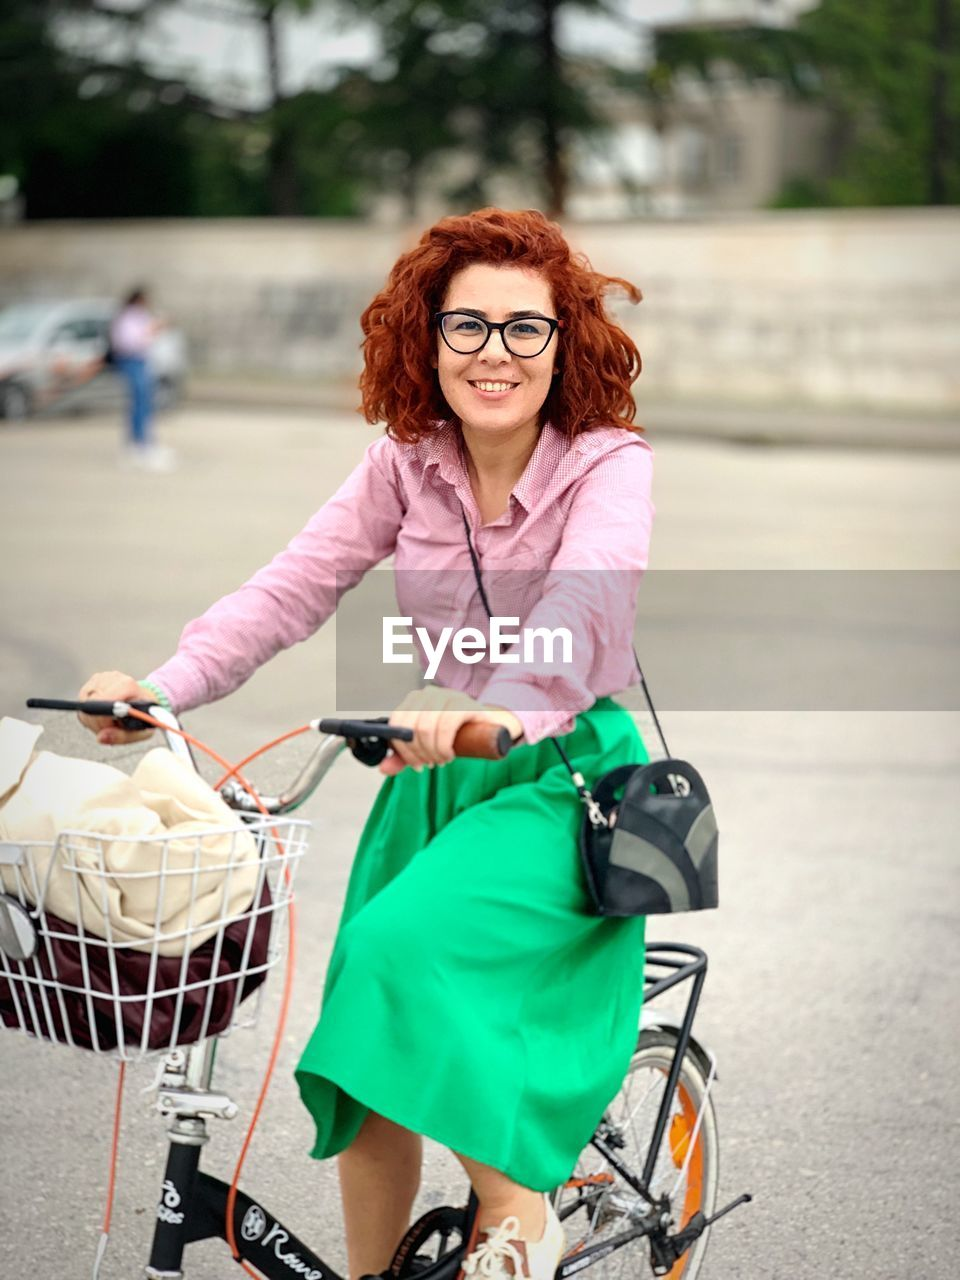 bicycle, real people, one person, women, lifestyles, glasses, transportation, adult, focus on foreground, sport, young adult, casual clothing, front view, day, basket, land vehicle, full length, females, hairstyle, outdoors, beautiful woman